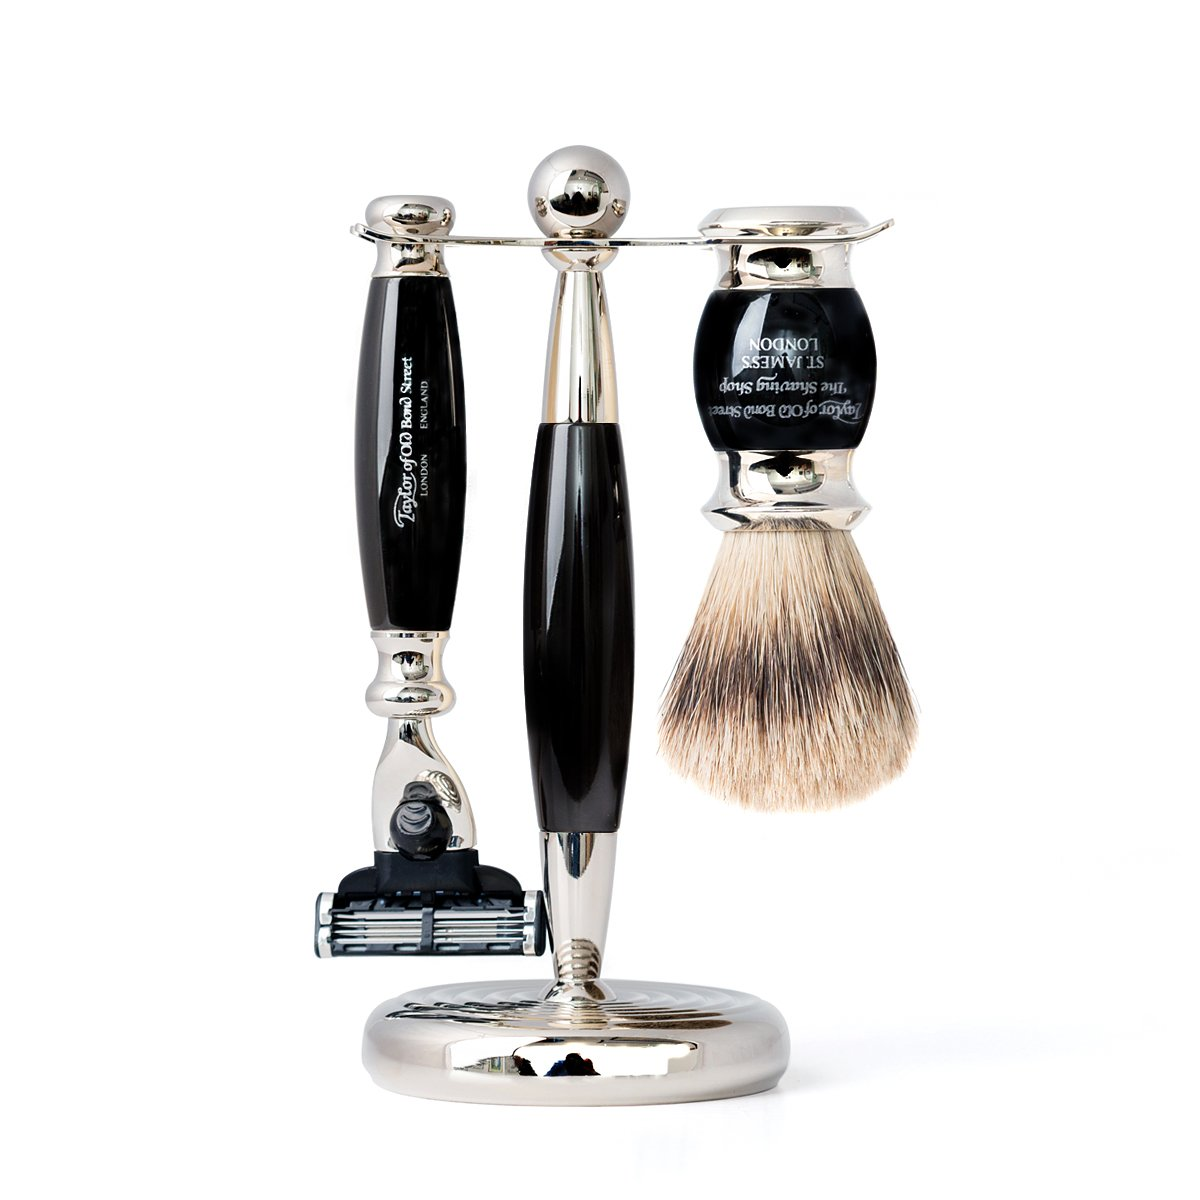 Black Super Mach3 Edwardian Shaving Set